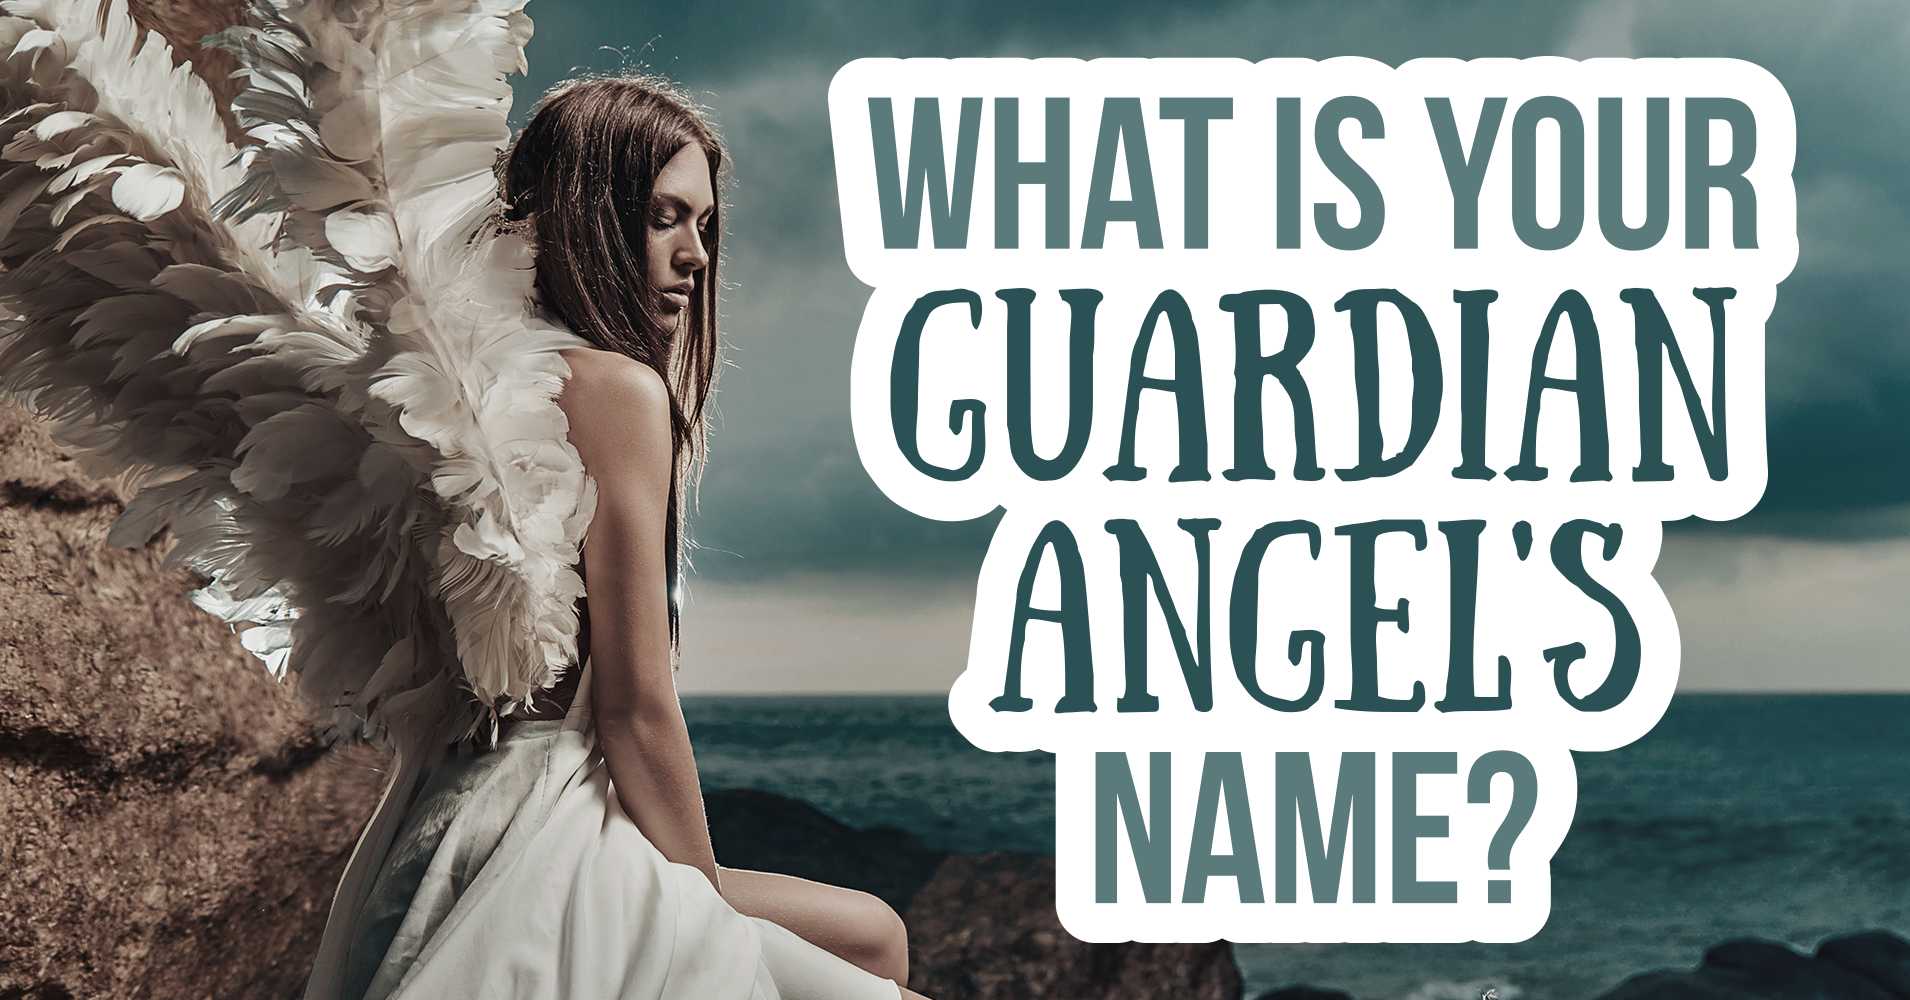 What Is Your Guardian Angel's Name? - Quiz - Quizony com